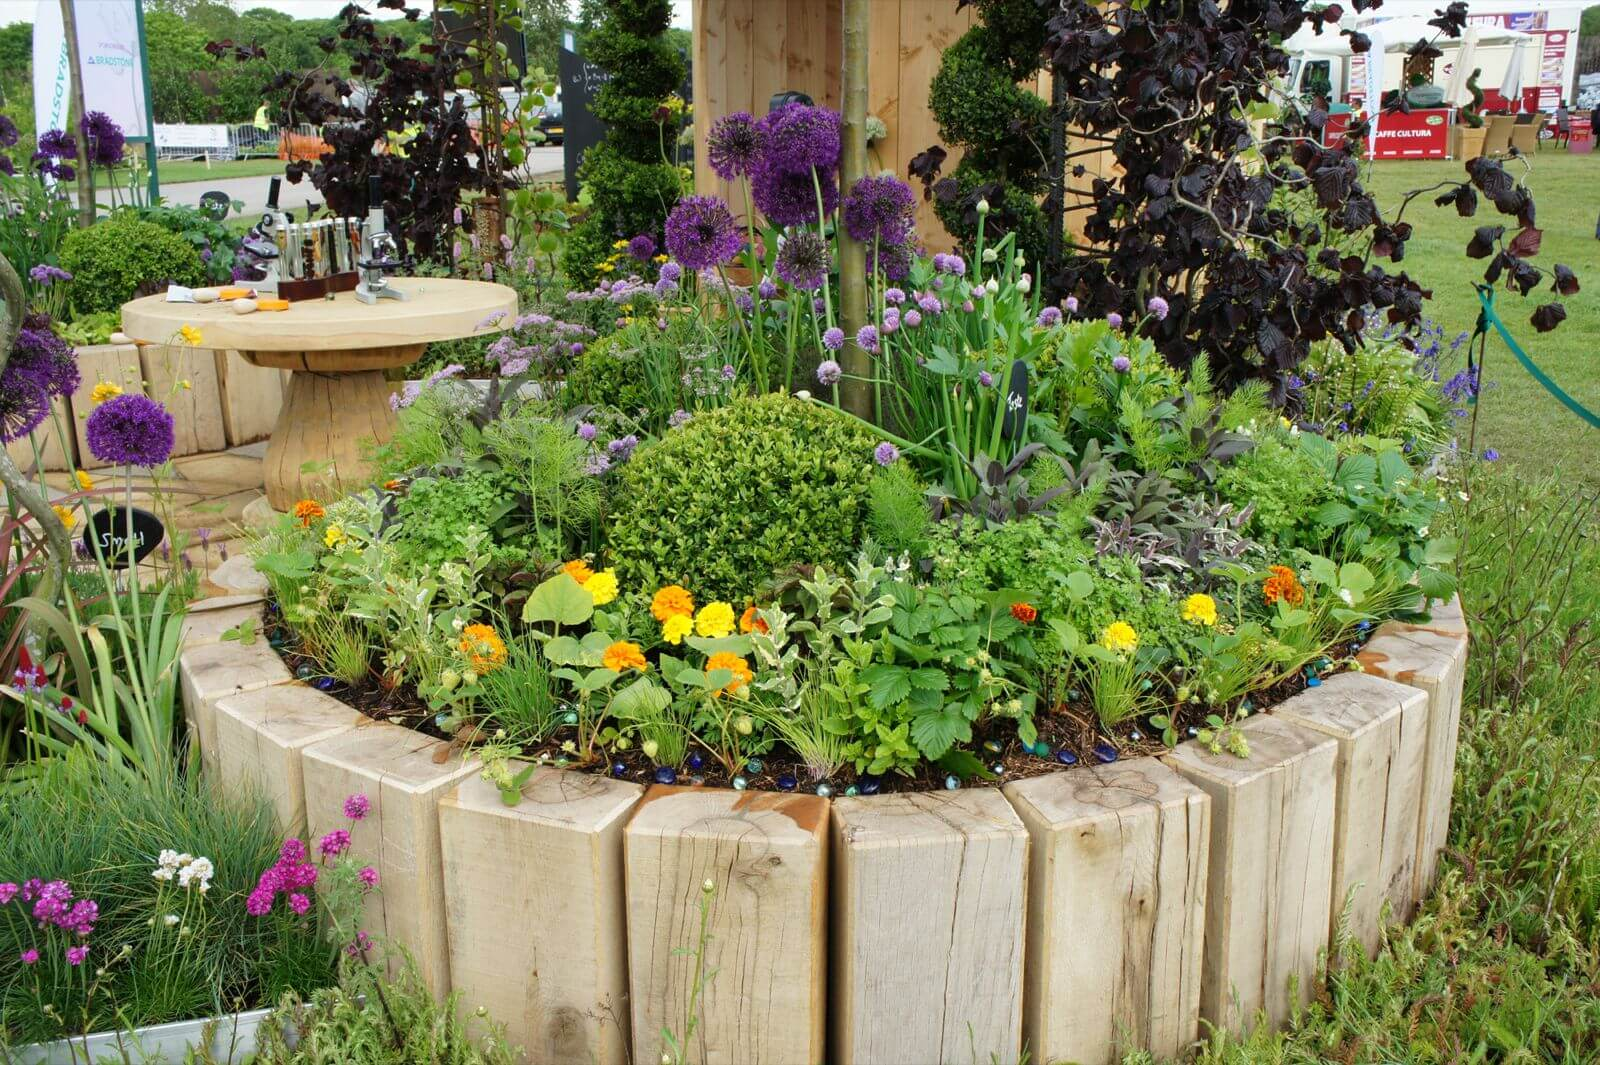 Square logs | Cool Round Garden Bed Ideas For Landscape Design - FarmFoodFamily.com #raisedgarden #raisedgardenbed #gardenbed